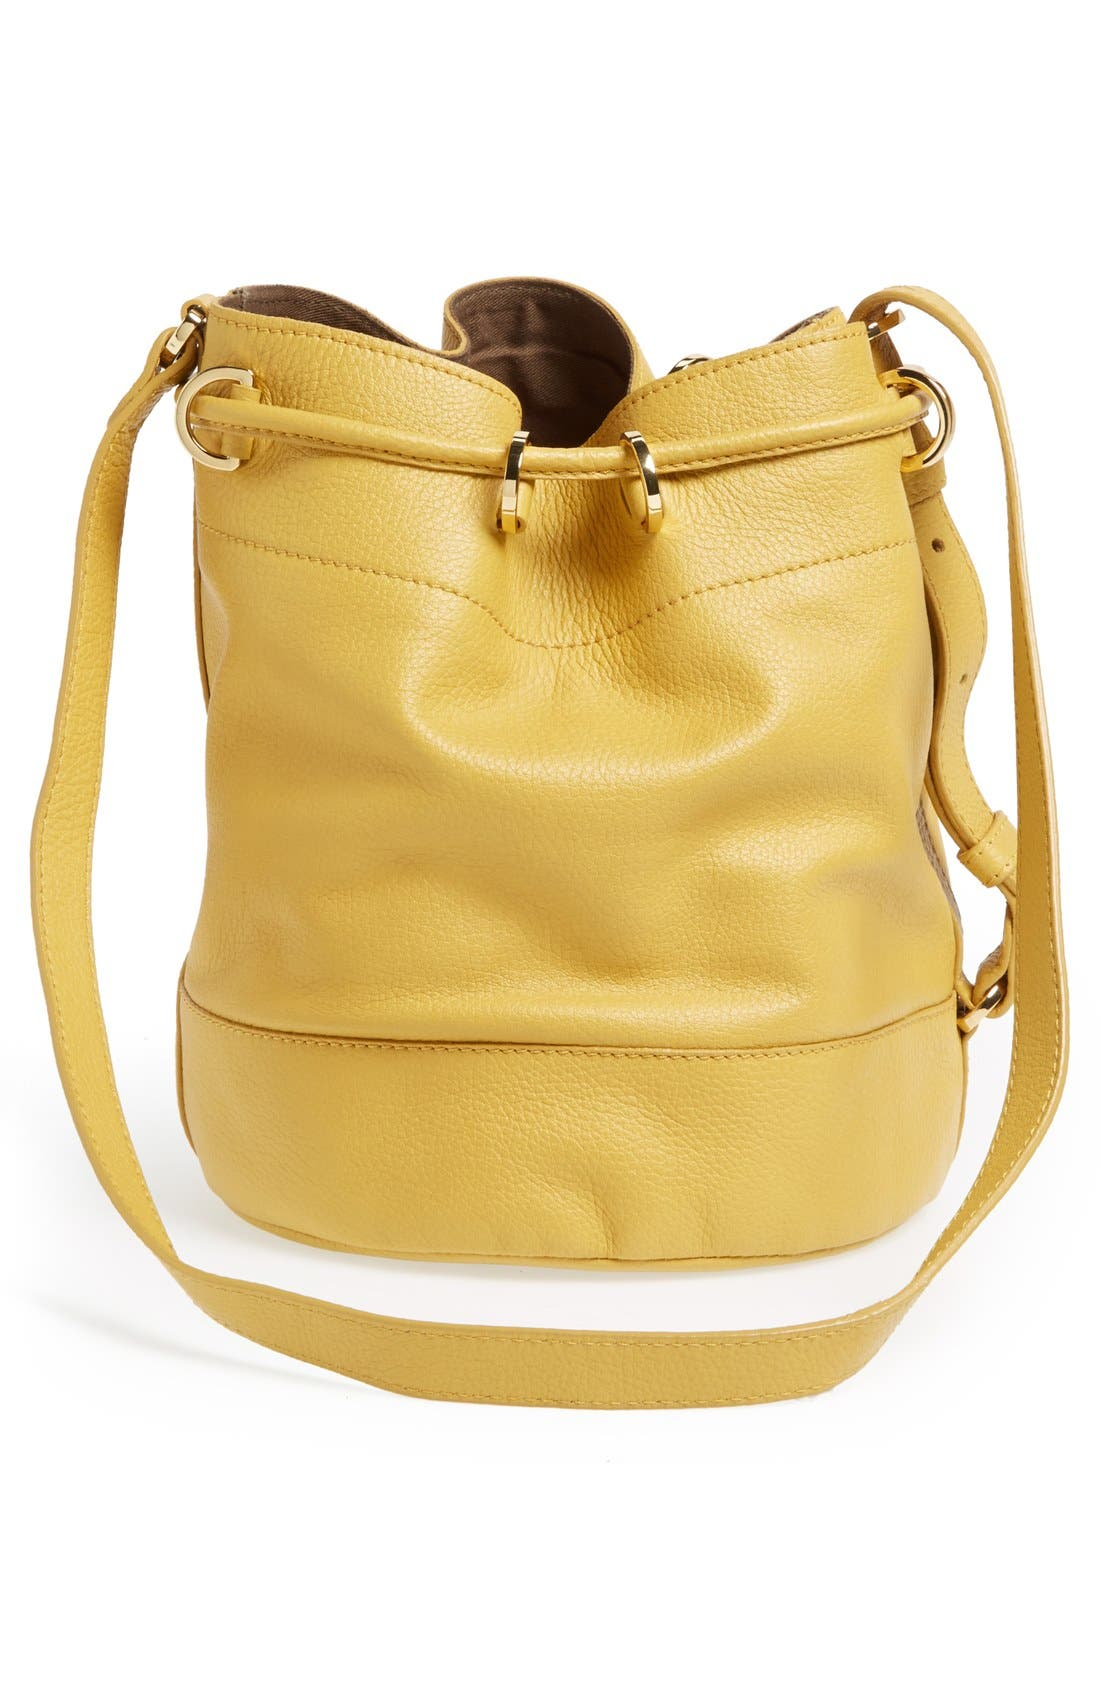 Alternate Image 2  - See by Chloé 'Small Vicki' Leather Bucket Bag